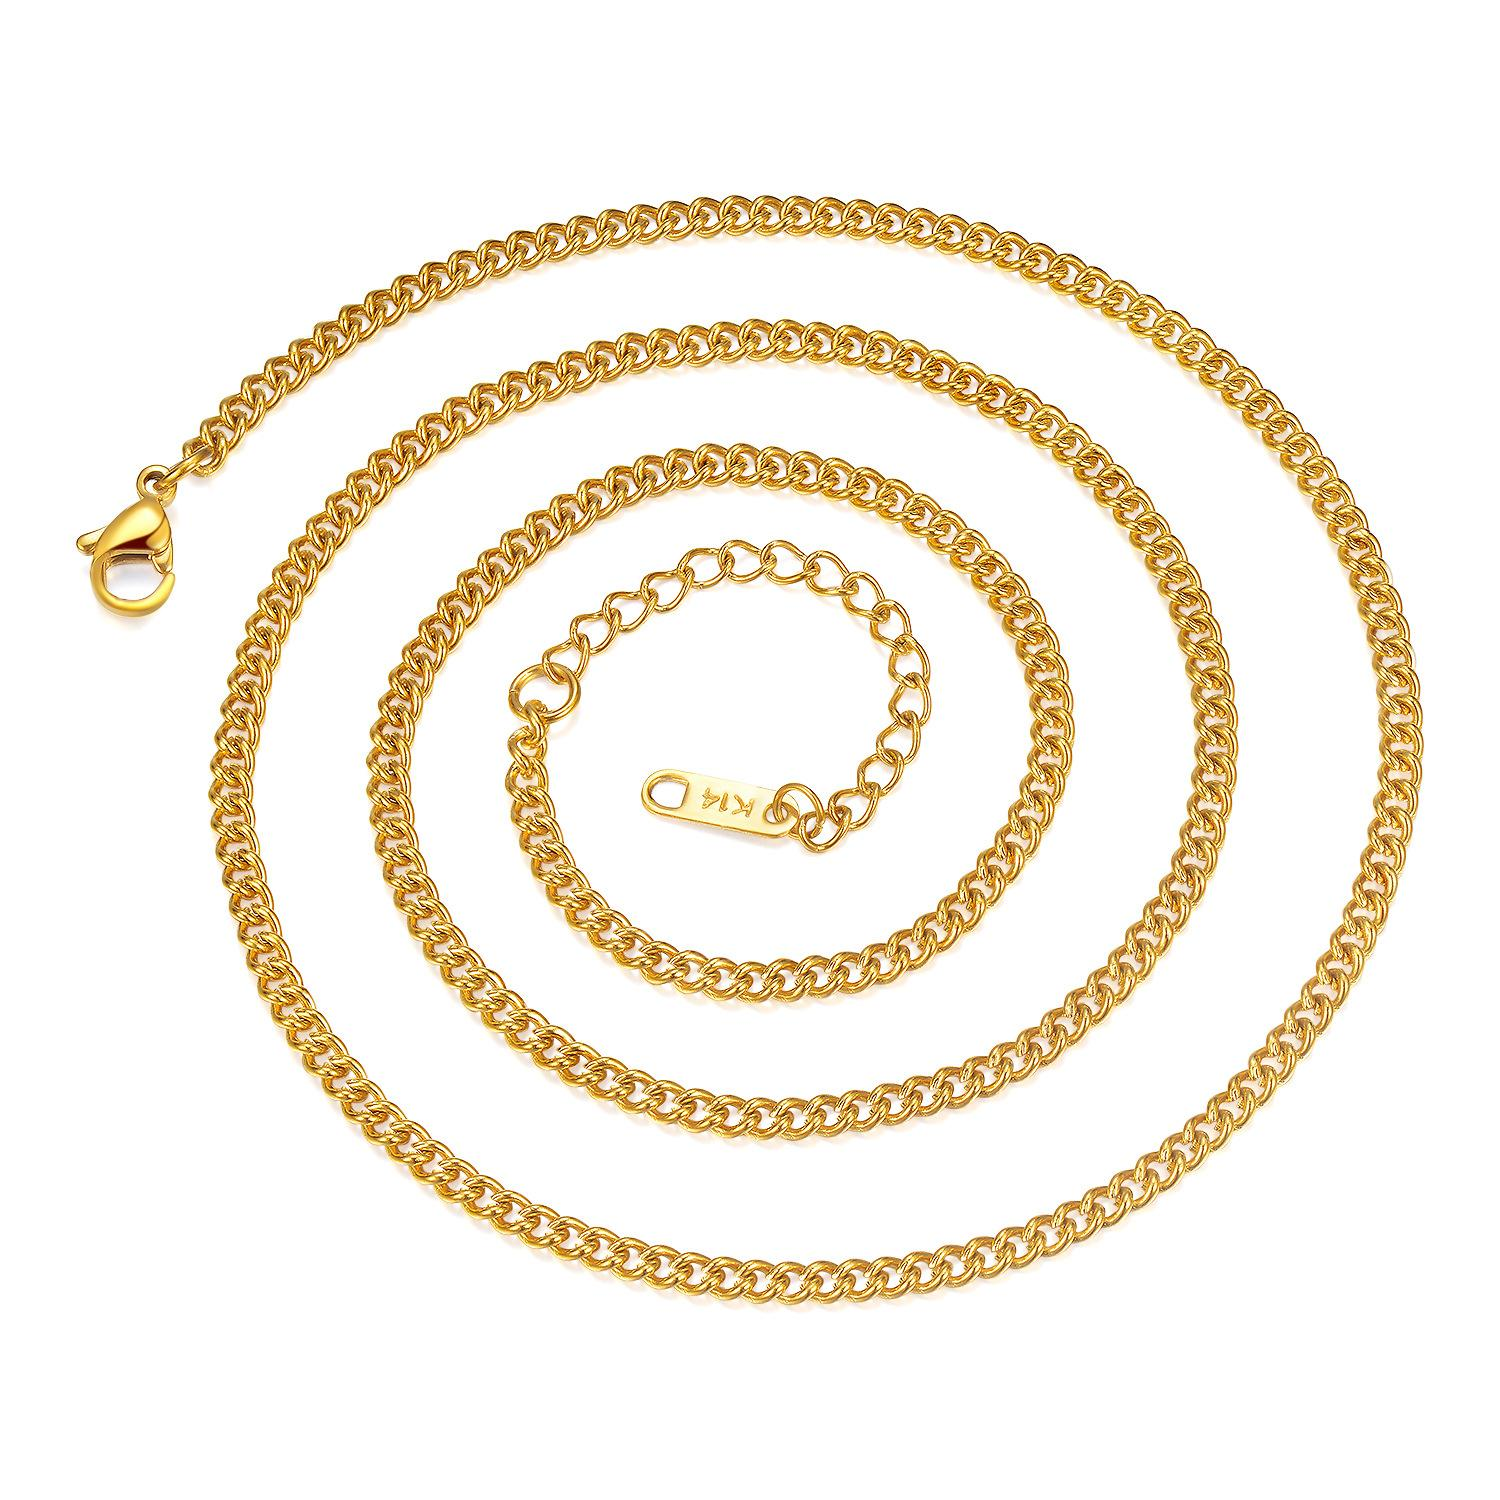 bracelet link store plated for gold mens style cuban basic product real necklace men chains